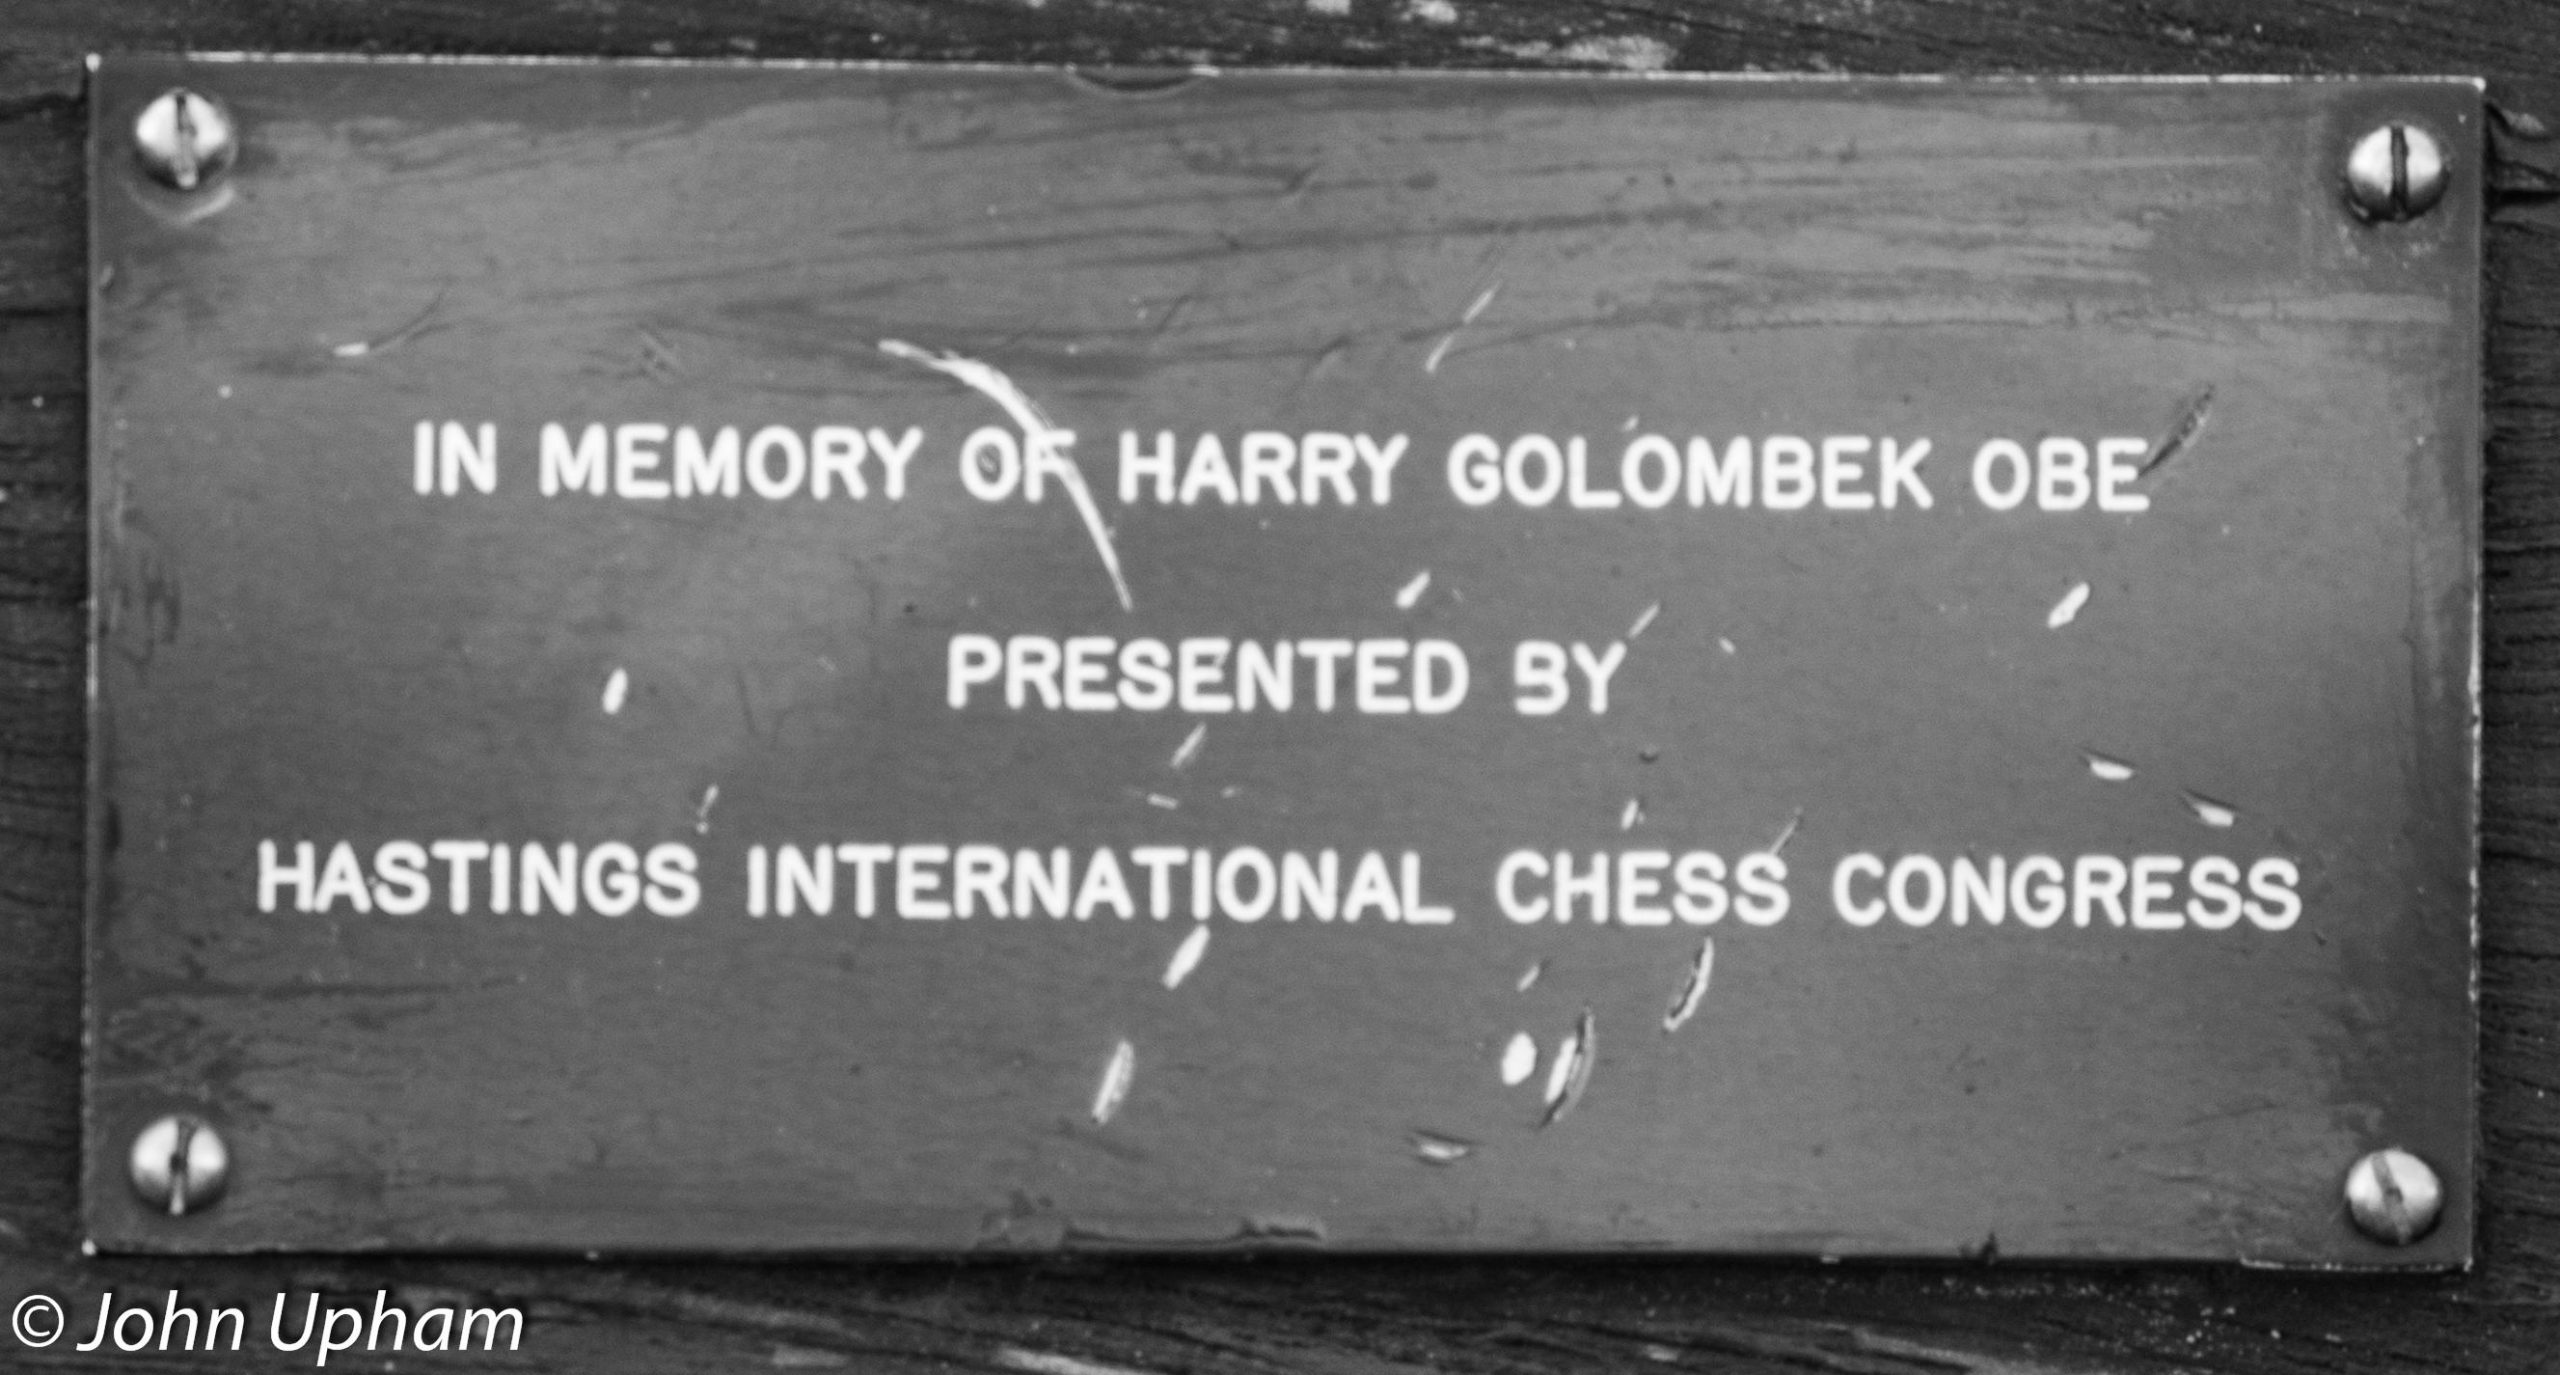 Hastings memorial bench for Harry Golombek OBE